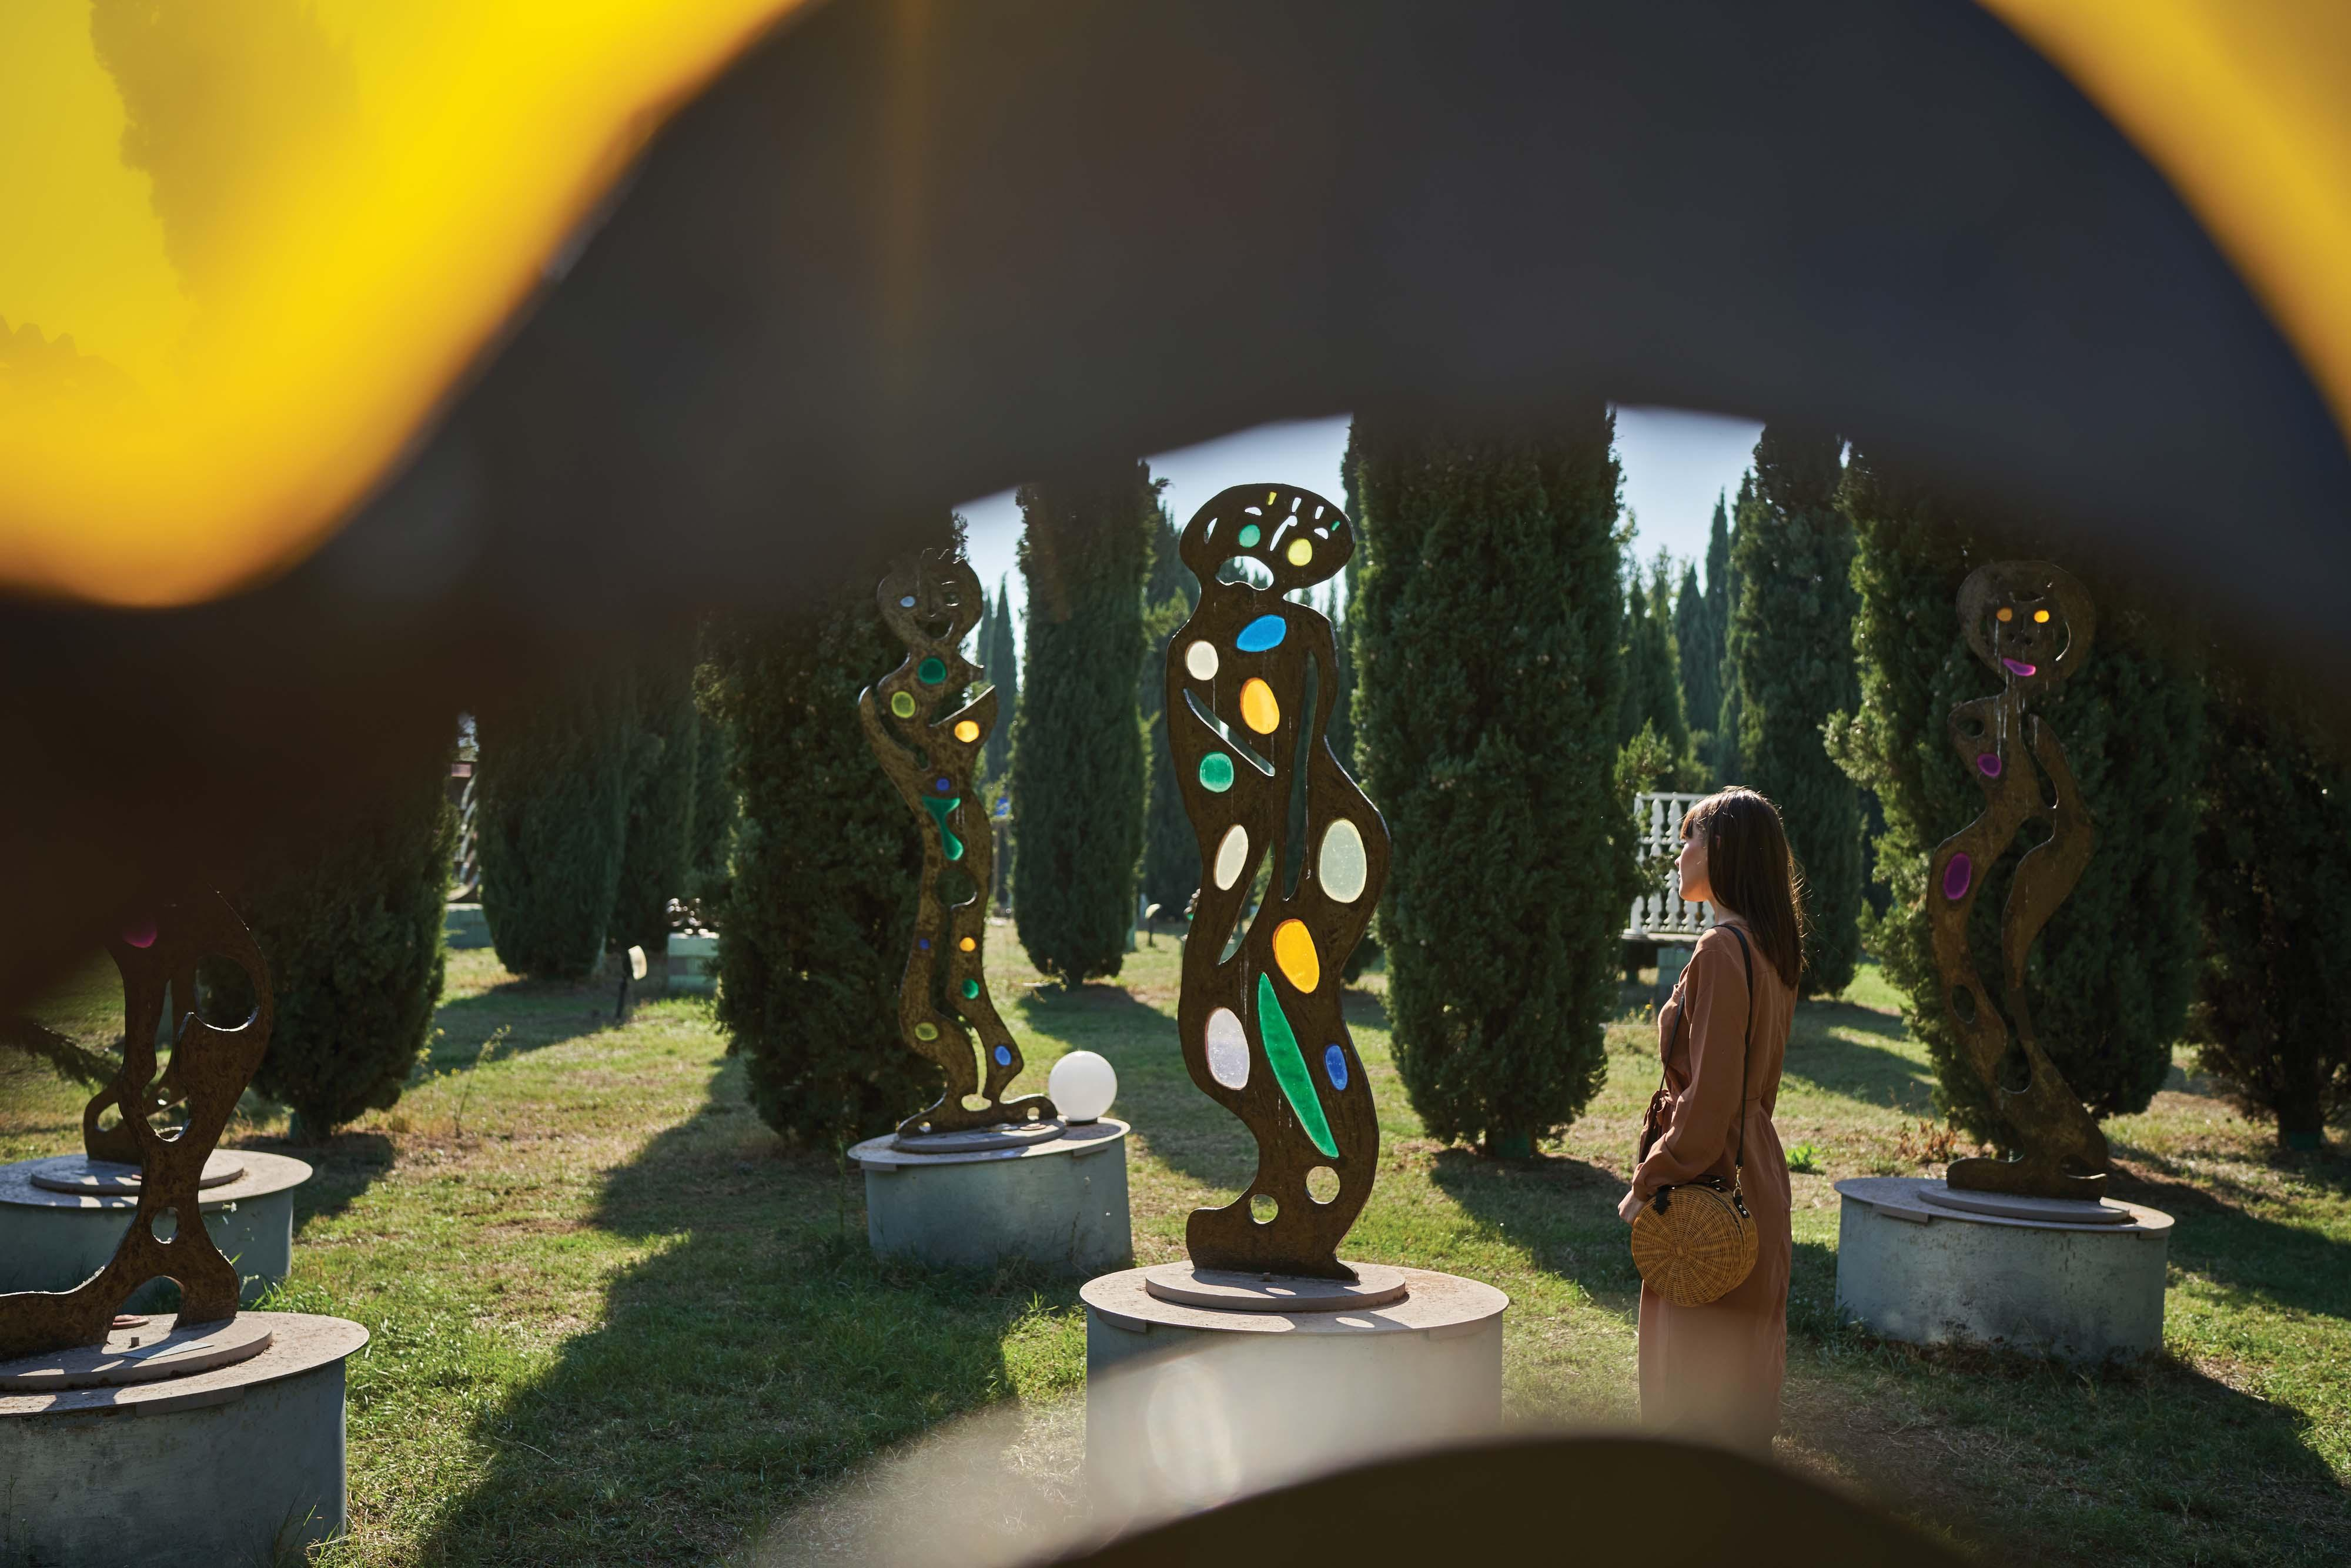 Explore the art parks of Tuscany